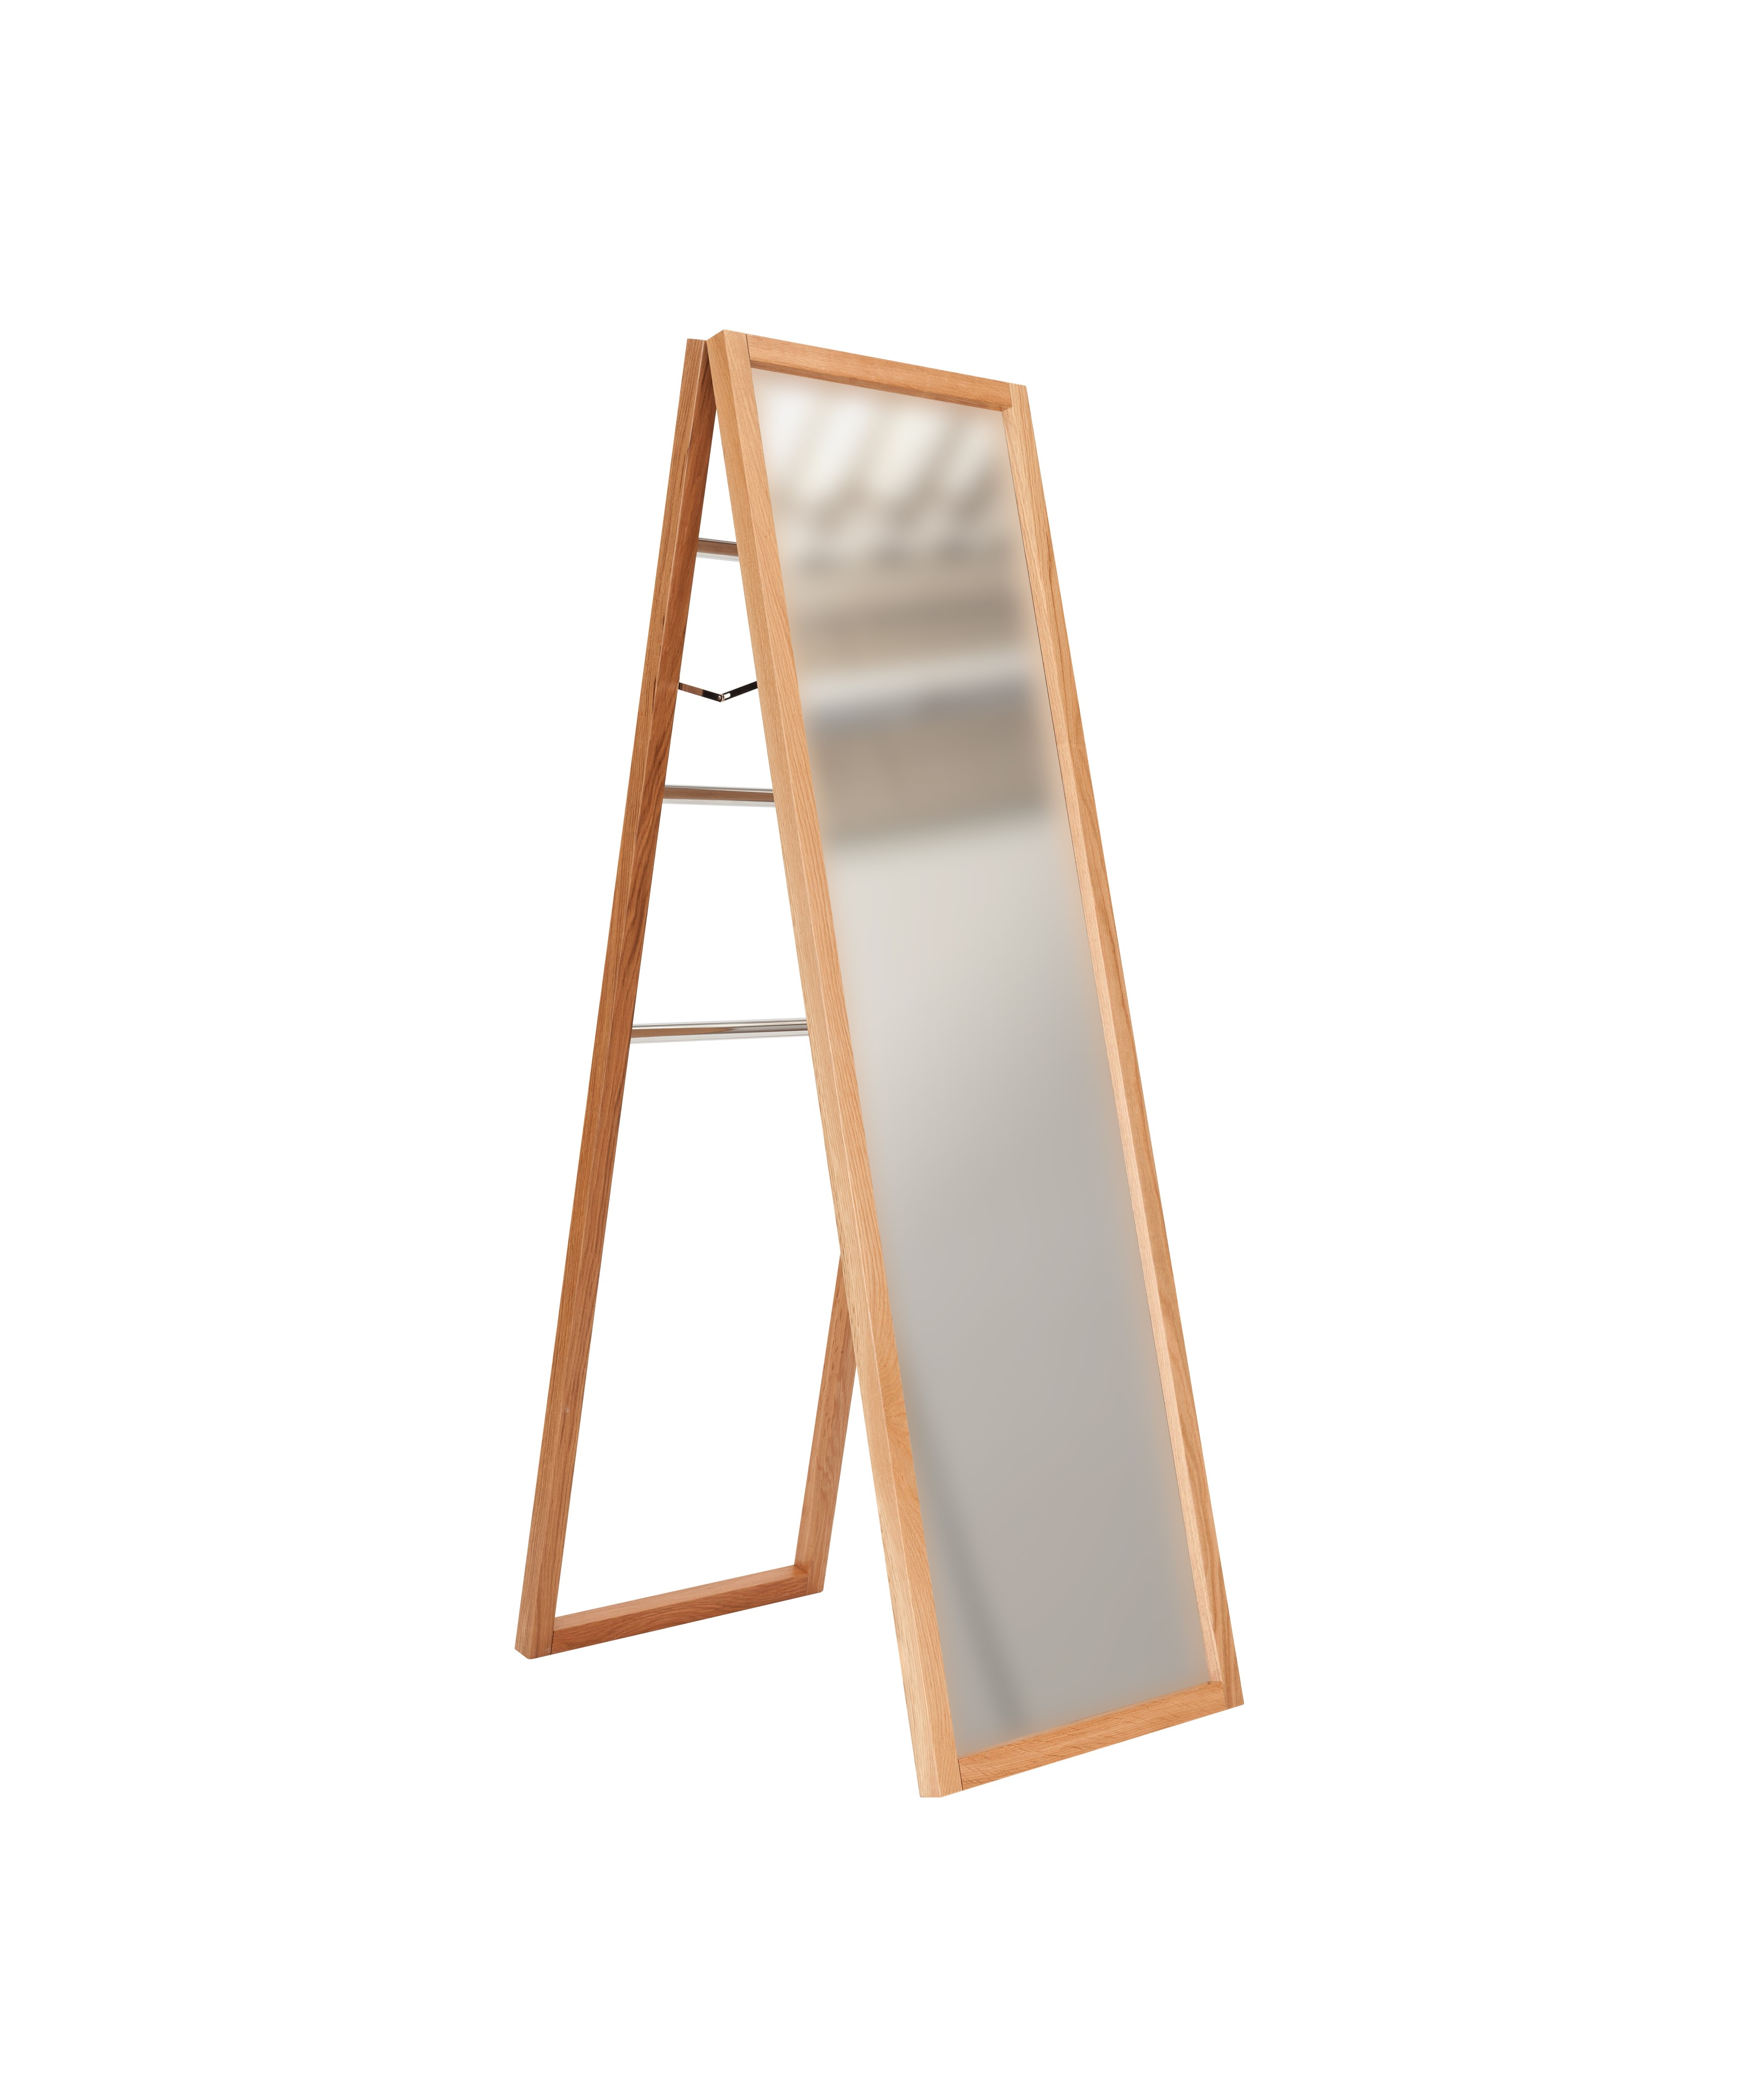 121278001013 NewEst Standing Mirror 01